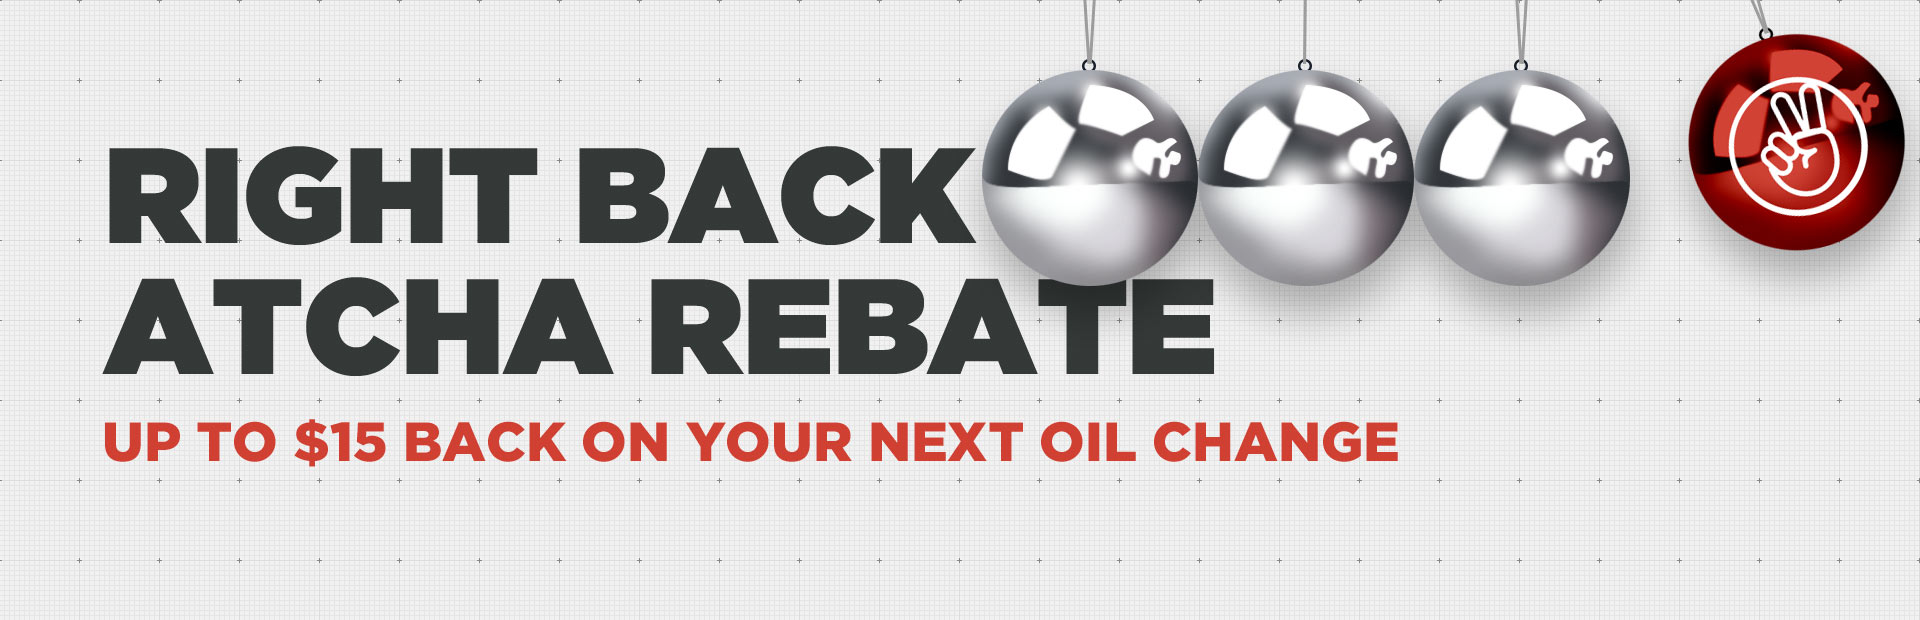 Kendall Right Back Atcha Rebate: Get up to $15 back on your next oil change!